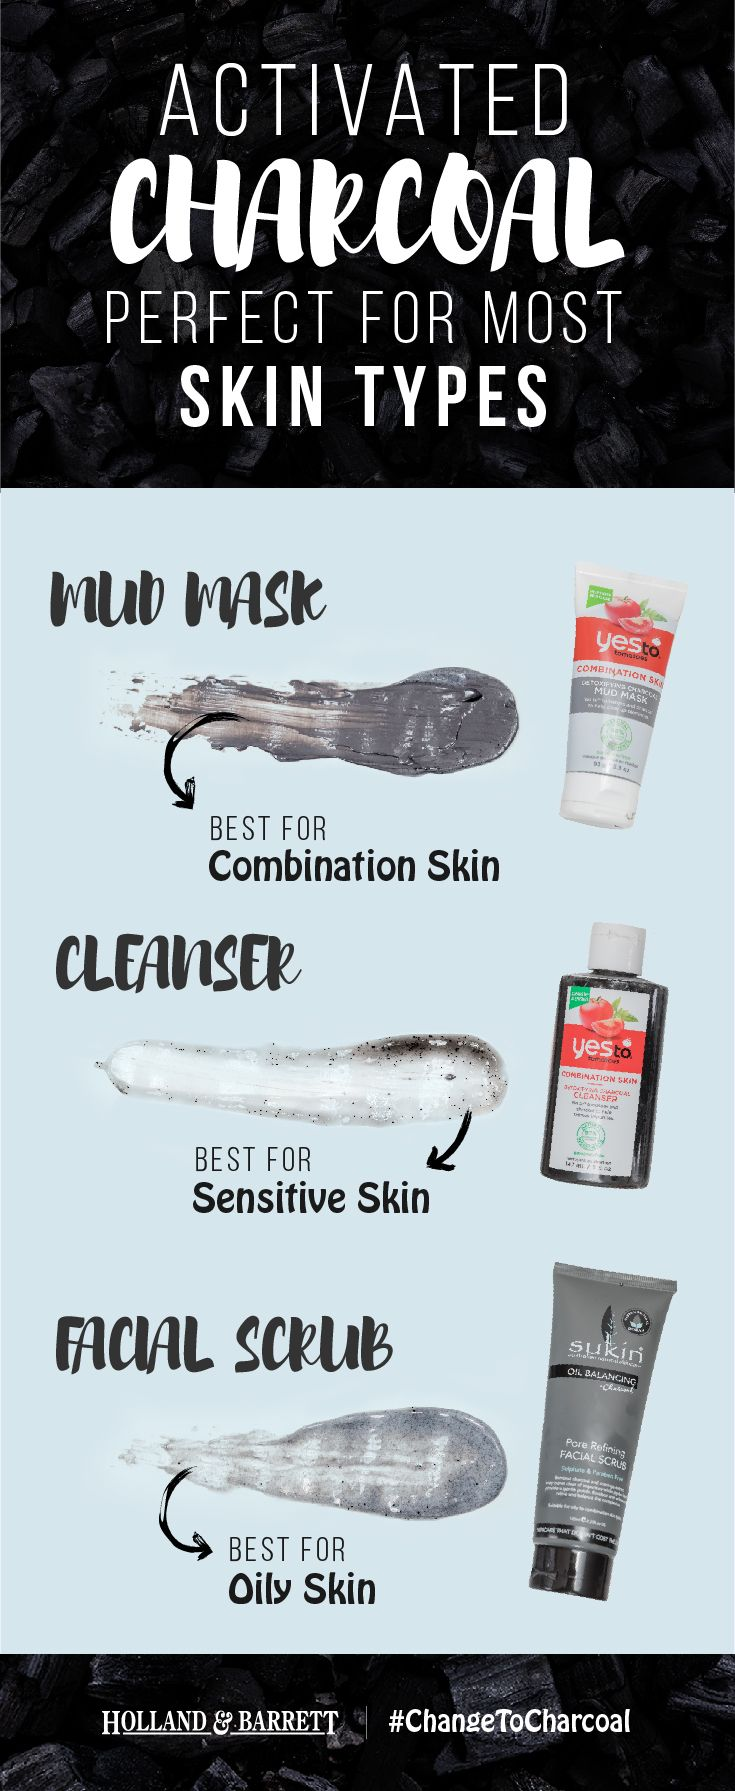 From sensitive skin, to combination skin, to normal skin; activated charcoal is the perfect match   With something for every step of your skin cleansing regime, it really is time to #ChangeToCharcoal